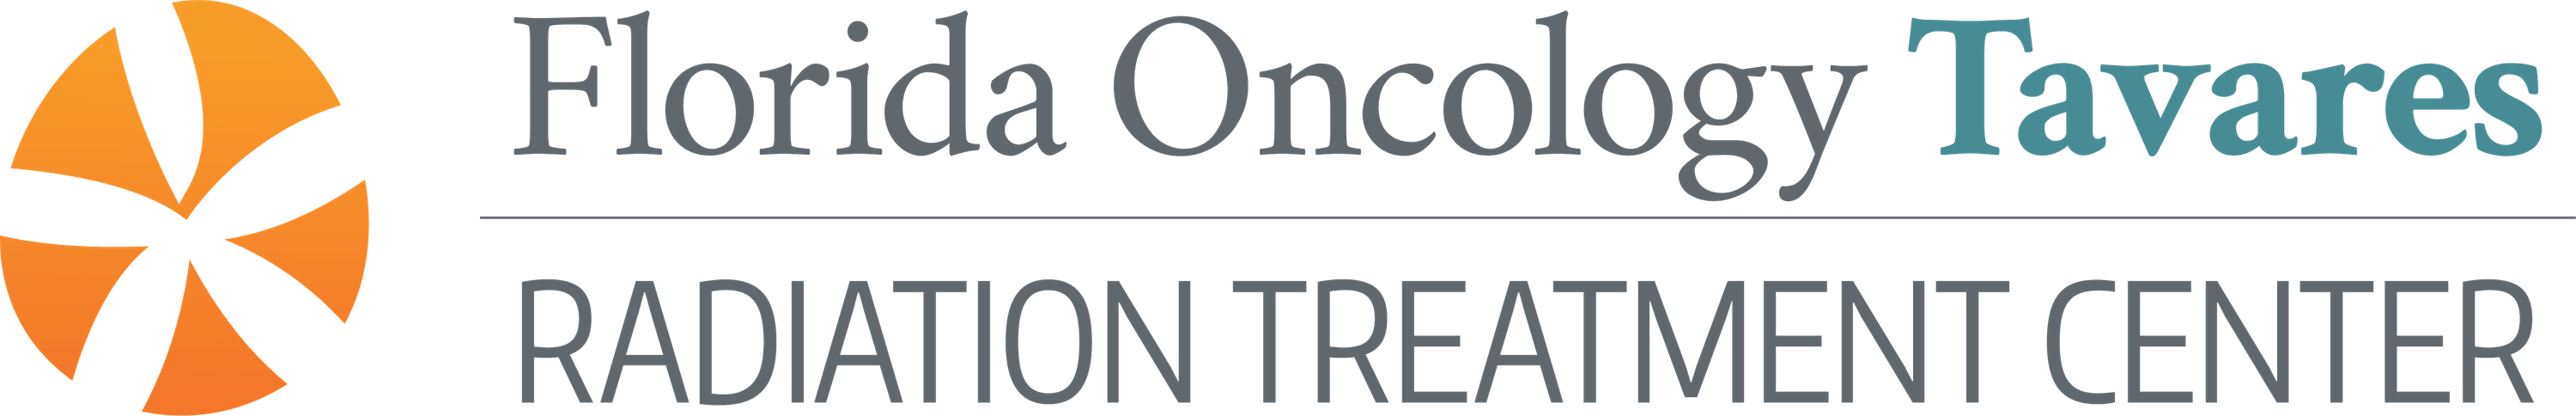 Florida Oncology Tavares